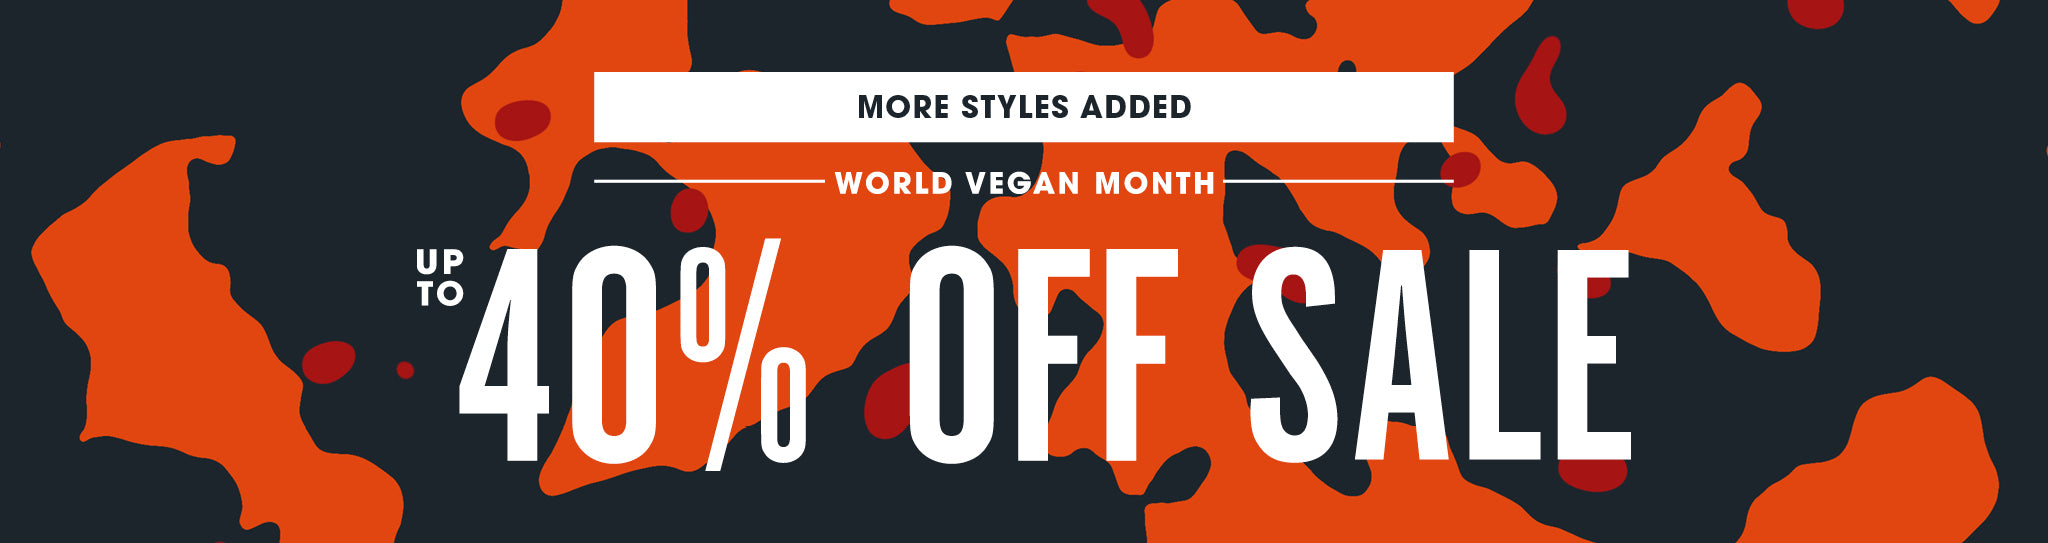 po-zu vegan shoes and sneakers